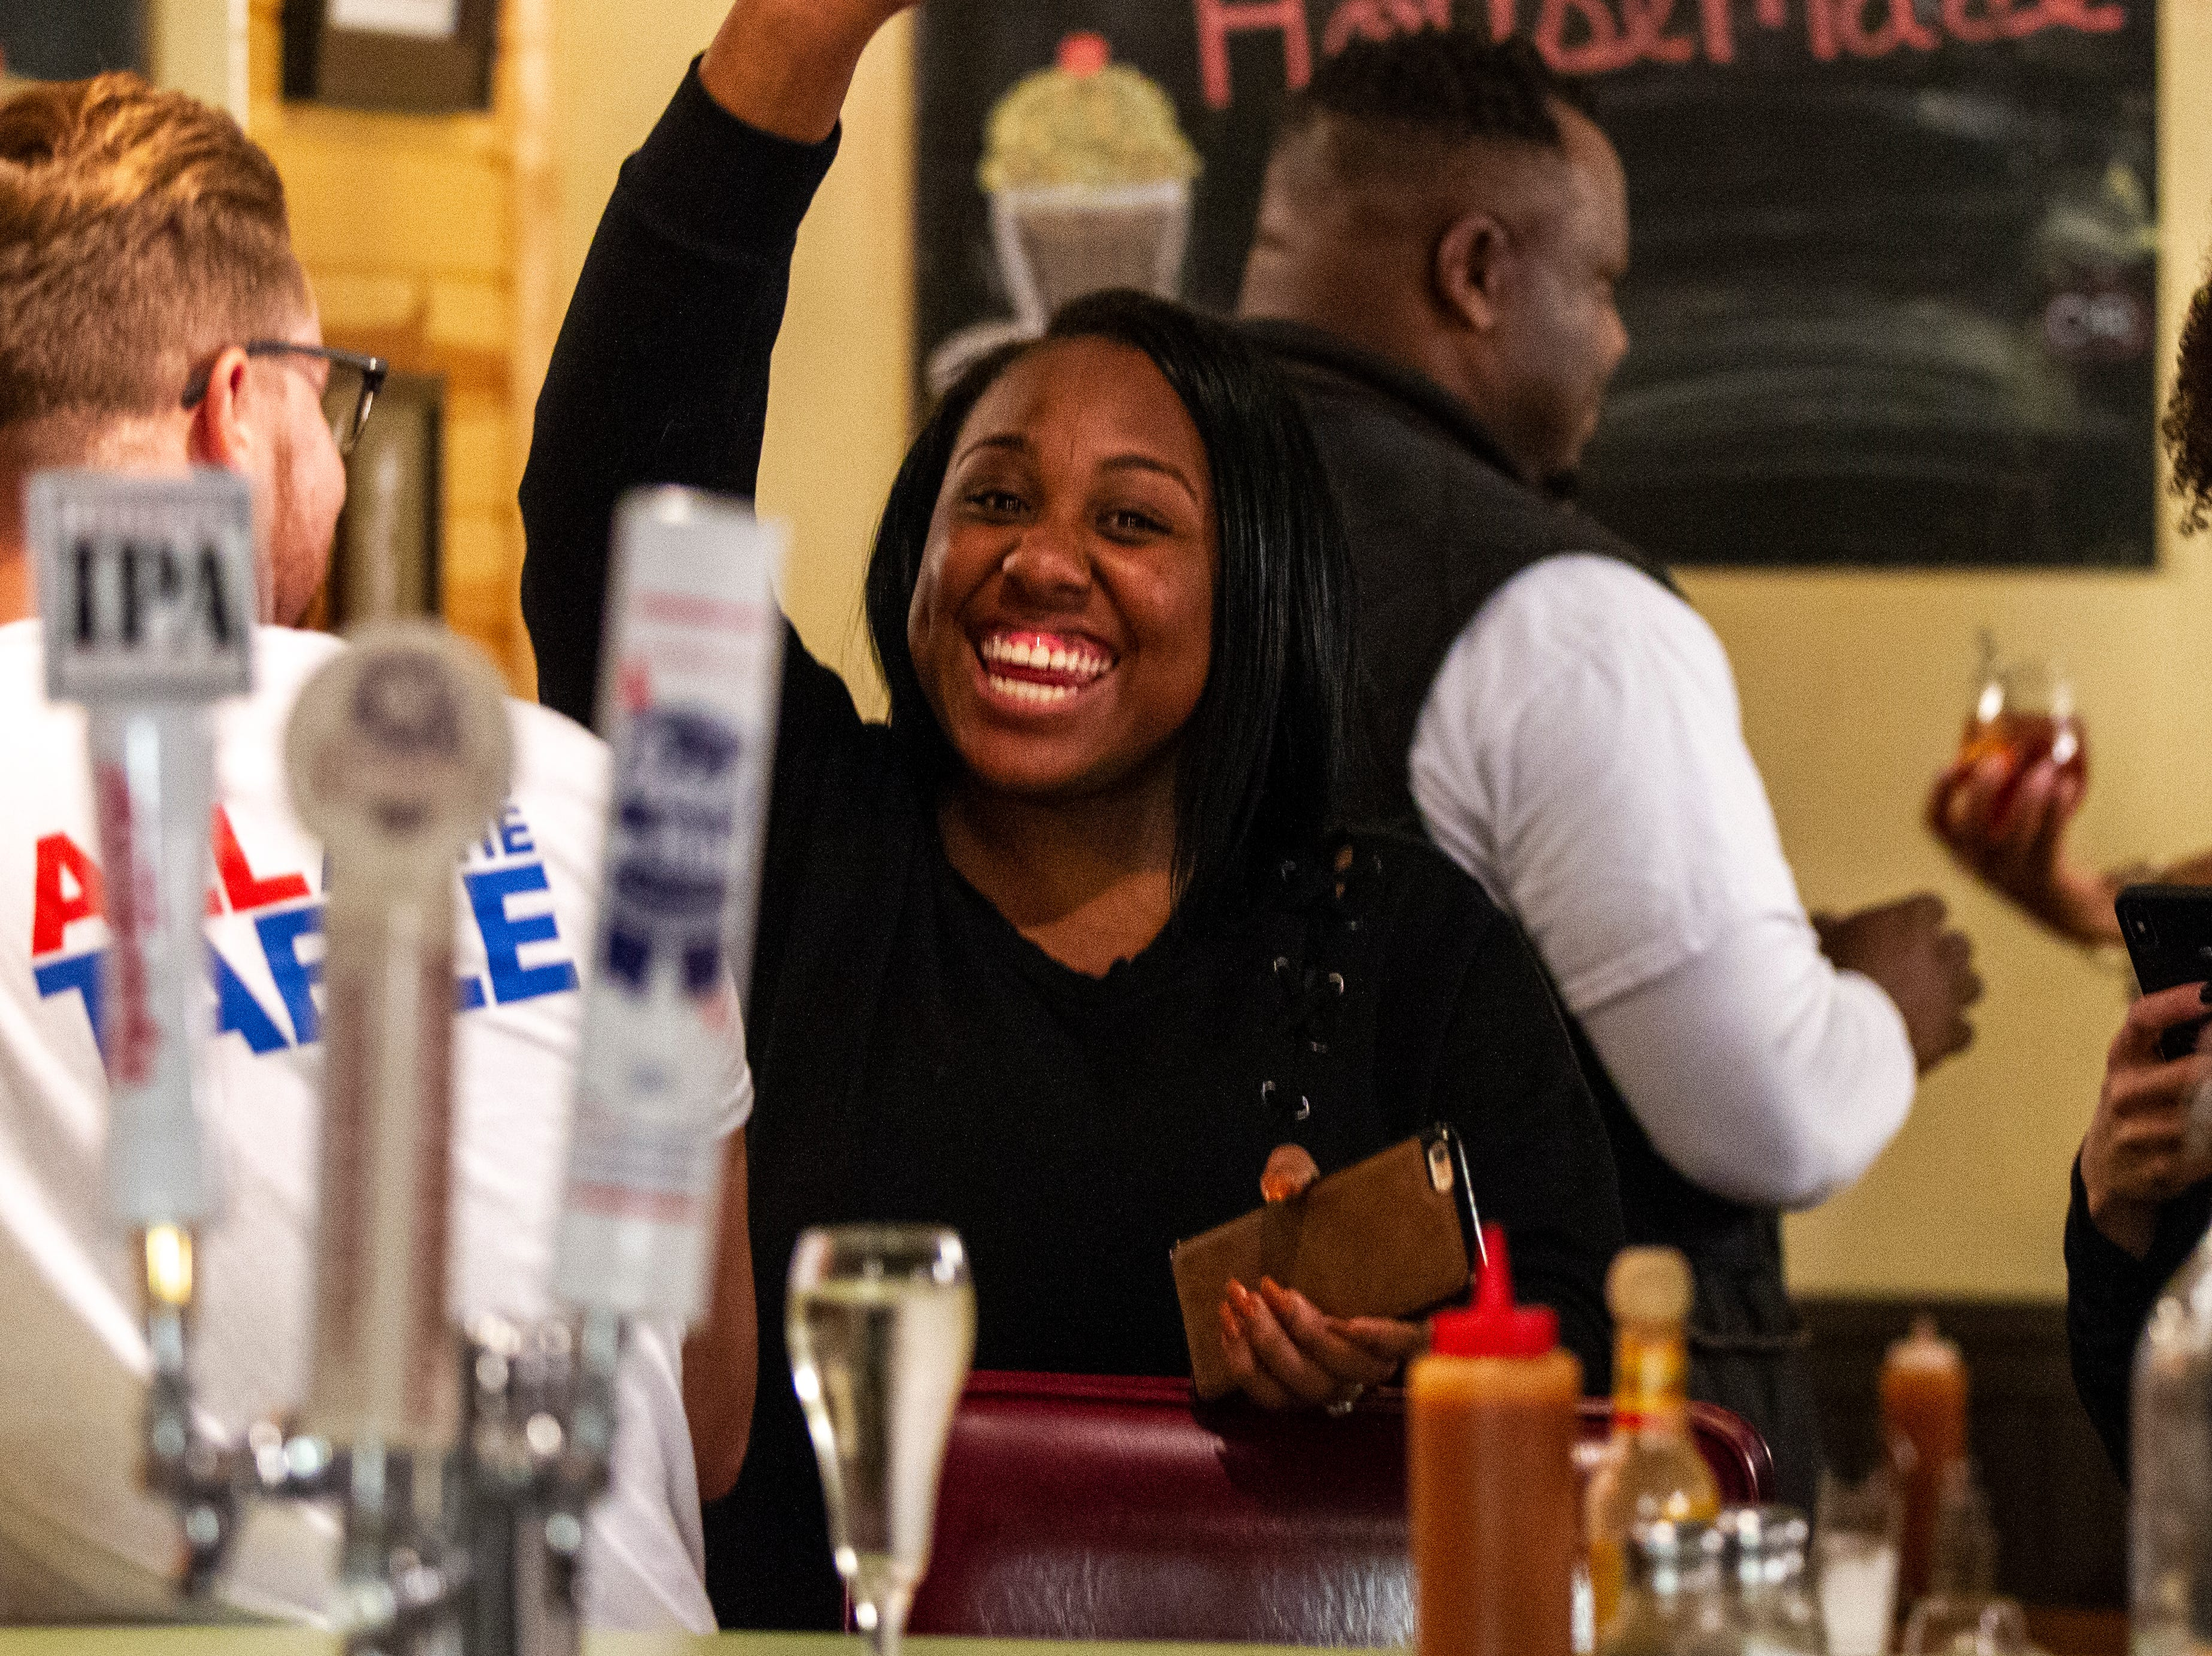 Emeral Green celebrates with Teague supporters after the final precinct reported its votes on Tuesday, Oct. 2, 2018, at Billy's High Hat Diner on Iowa Avenue in Iowa City.